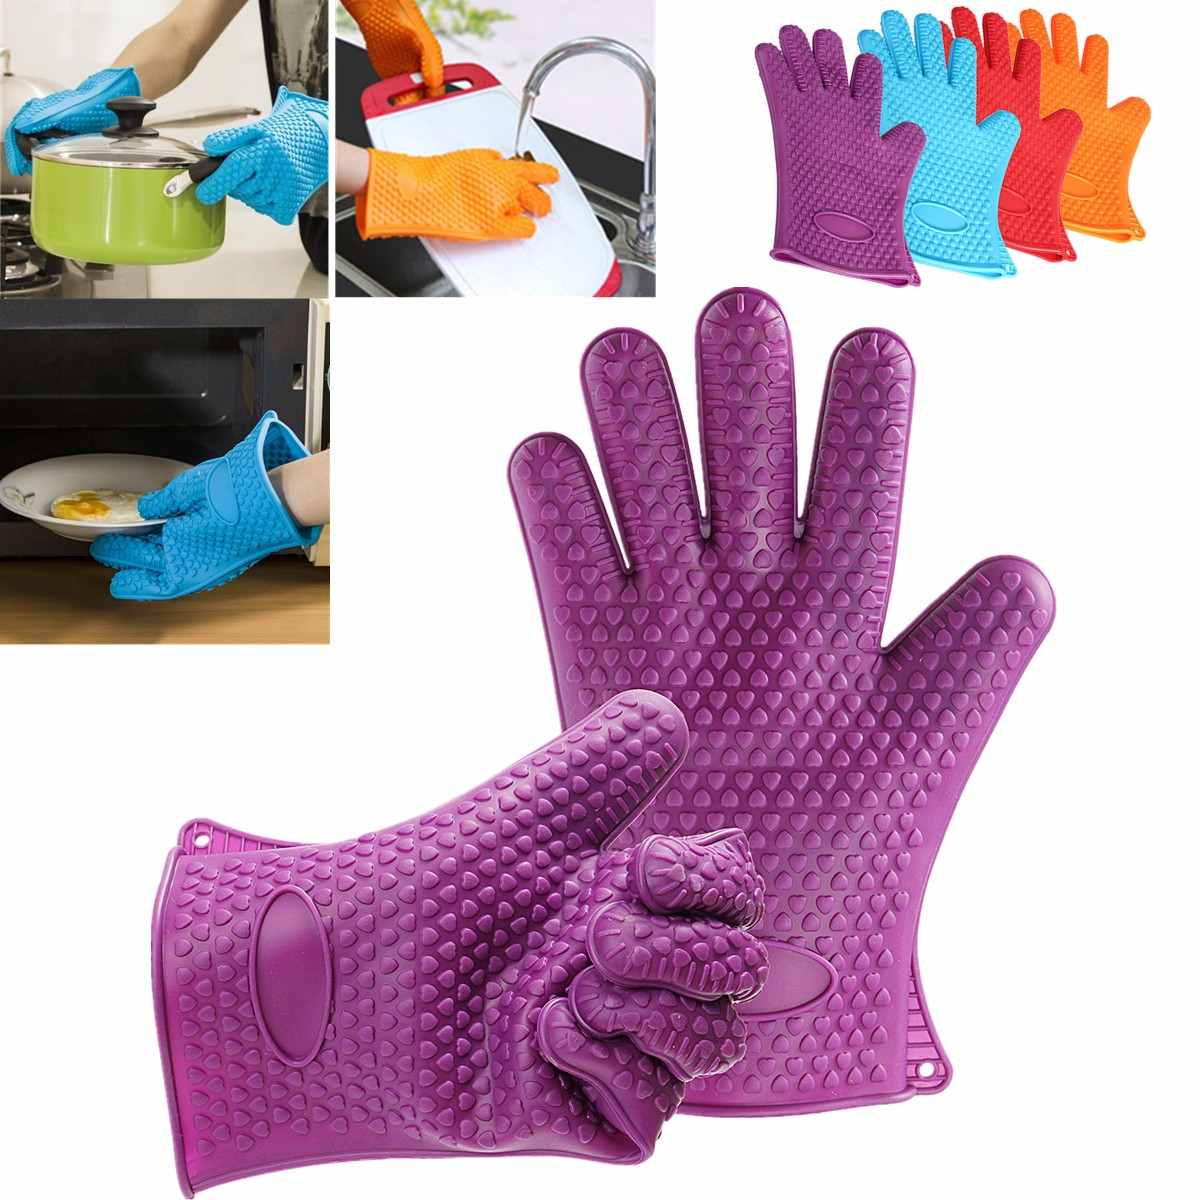 1 Pair food grade Heat Resistant Silicone Kitchen barbecue oven glove Cooking BBQ Grill Glove Oven Mitt Baking Protective gloves обои виниловые as creation opera 1 06х10м 30317 4